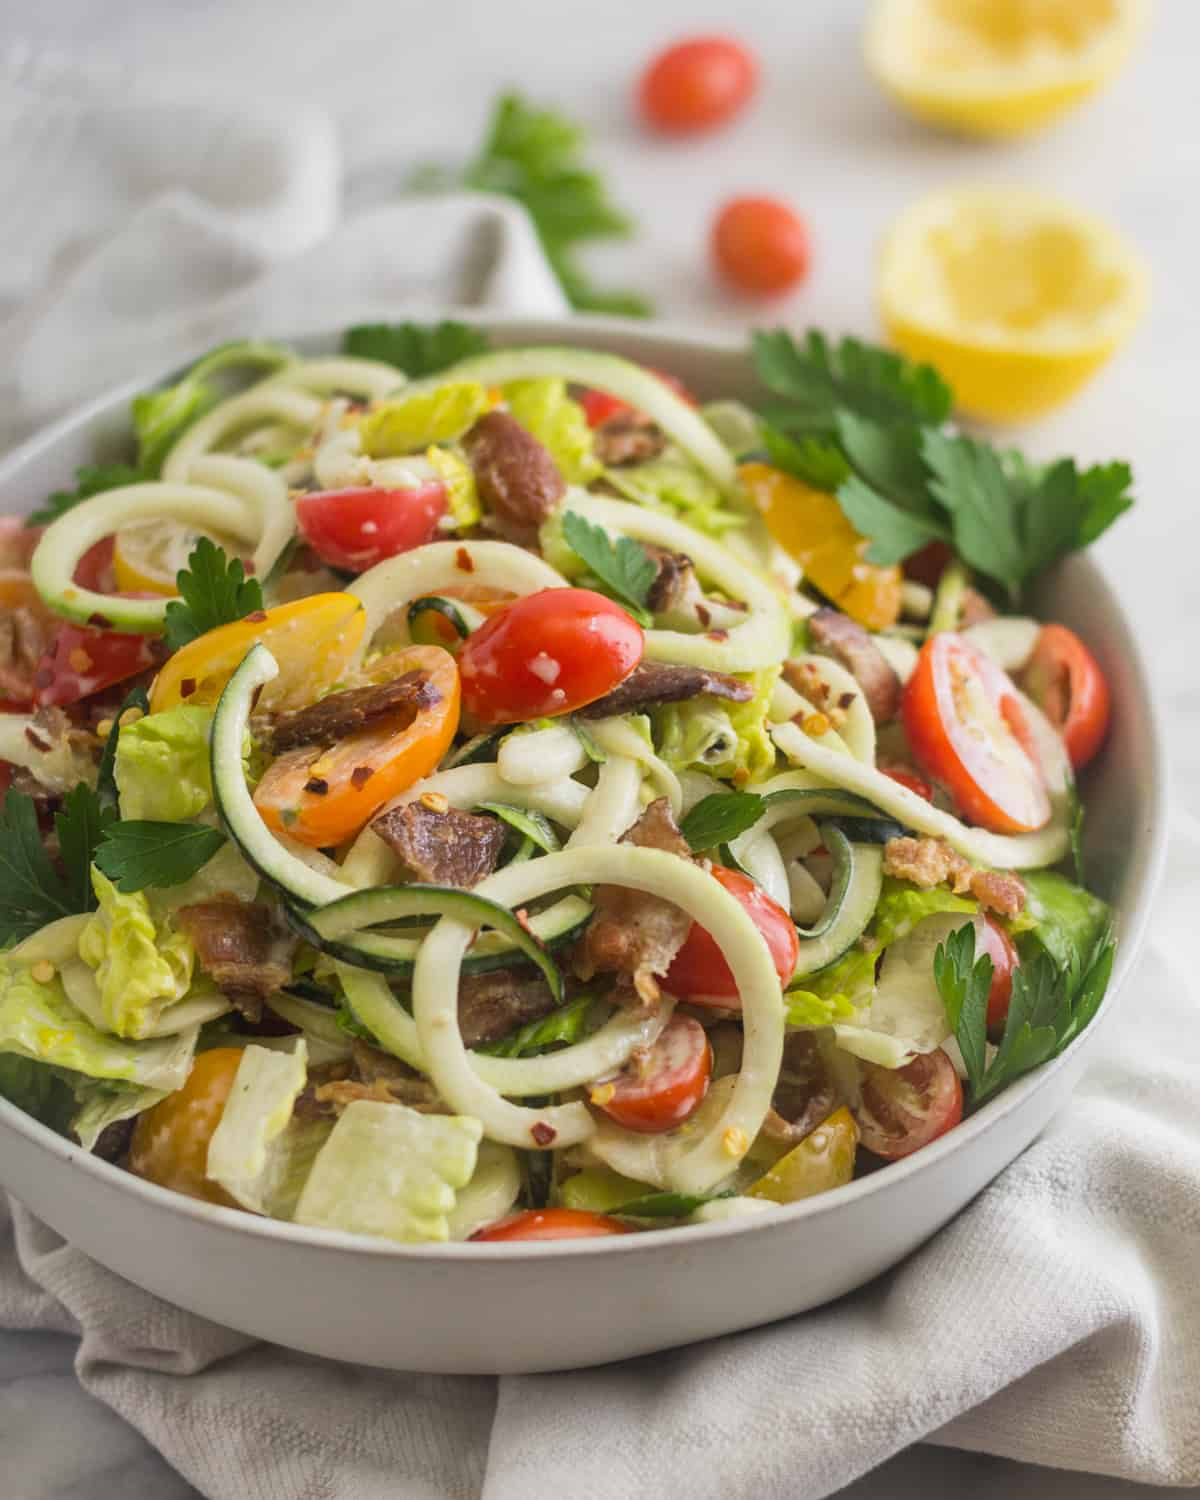 Large white bowl of BLT Zucchini Noodle Pasta Salad with half a lemon and cherry tomatoes behind it